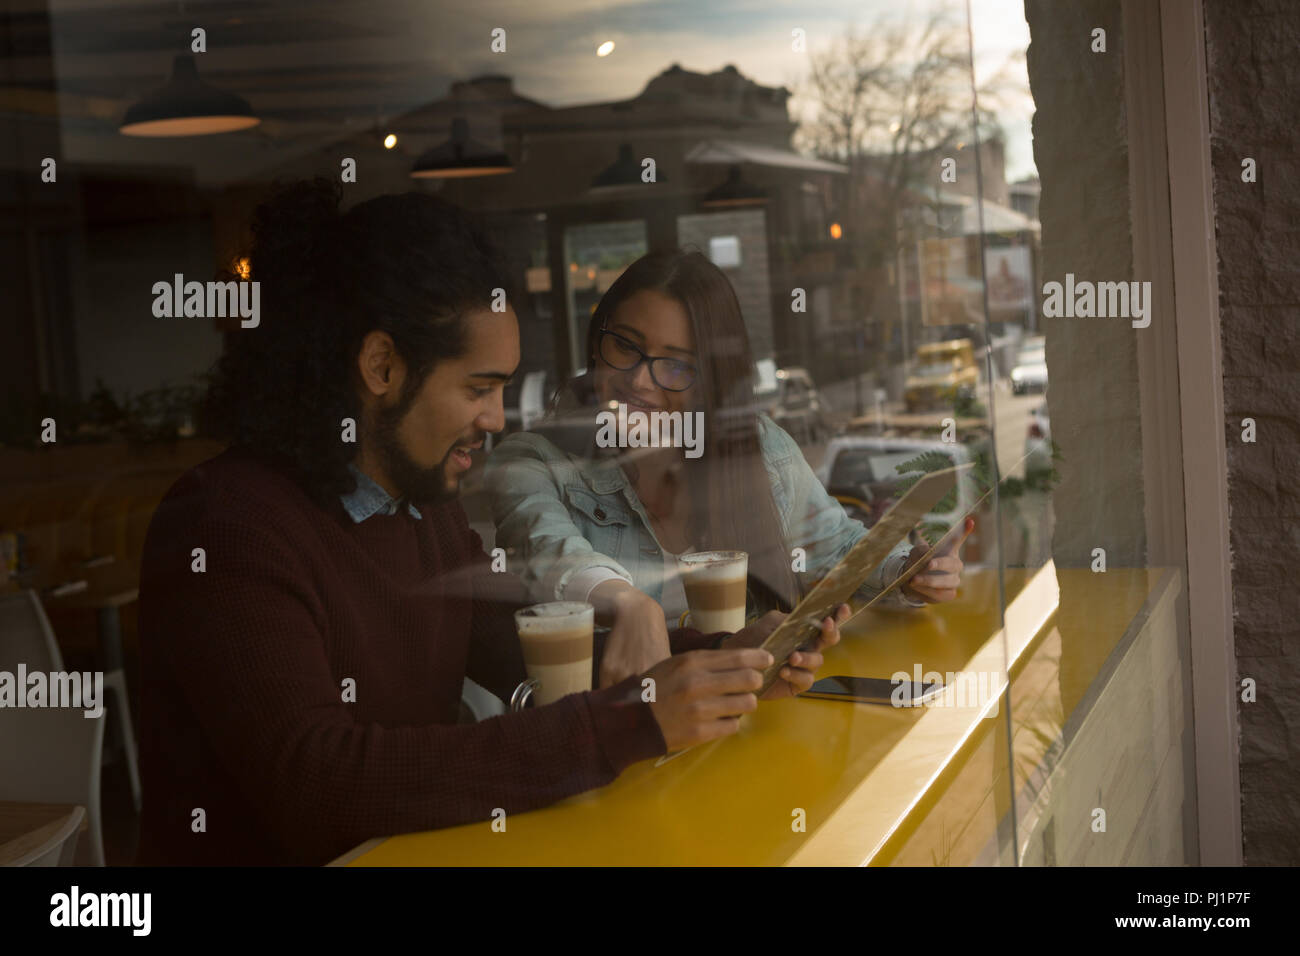 Couple discussing menu card in cafe - Stock Image